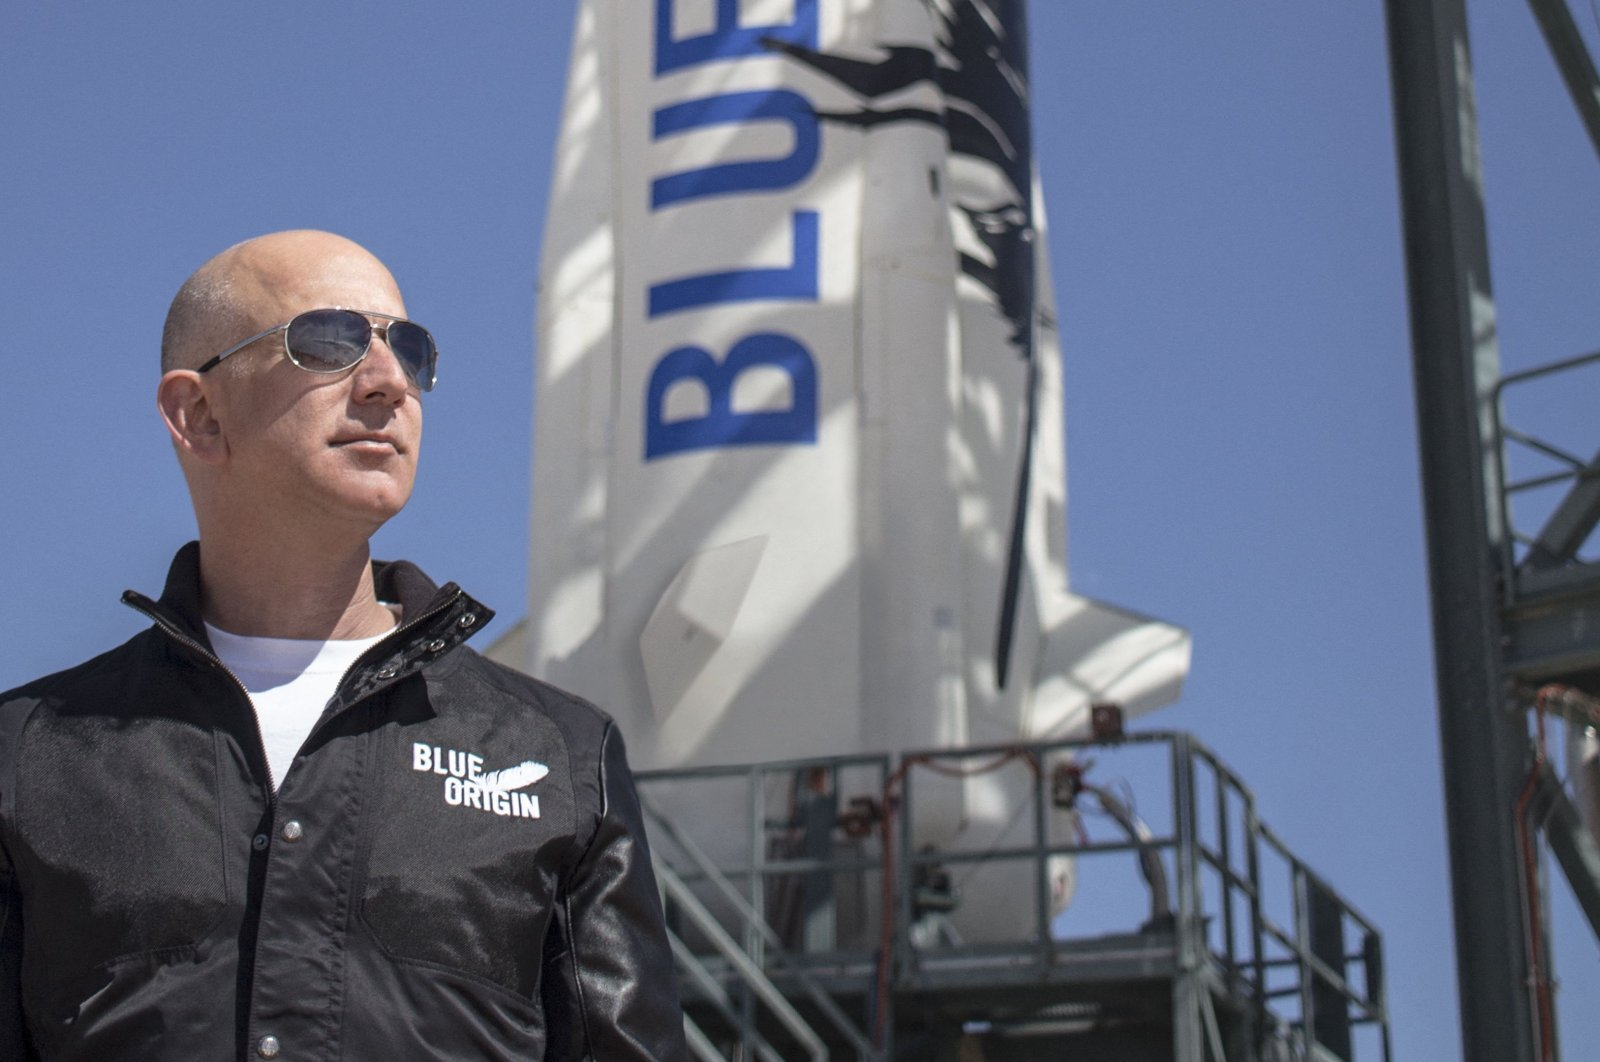 Jeff Bezos, founder of Blue Origin, at New Shepard's West Texas launch facility before the rocket's maiden voyage, U.S., April 24, 2015. (AFP Photo)